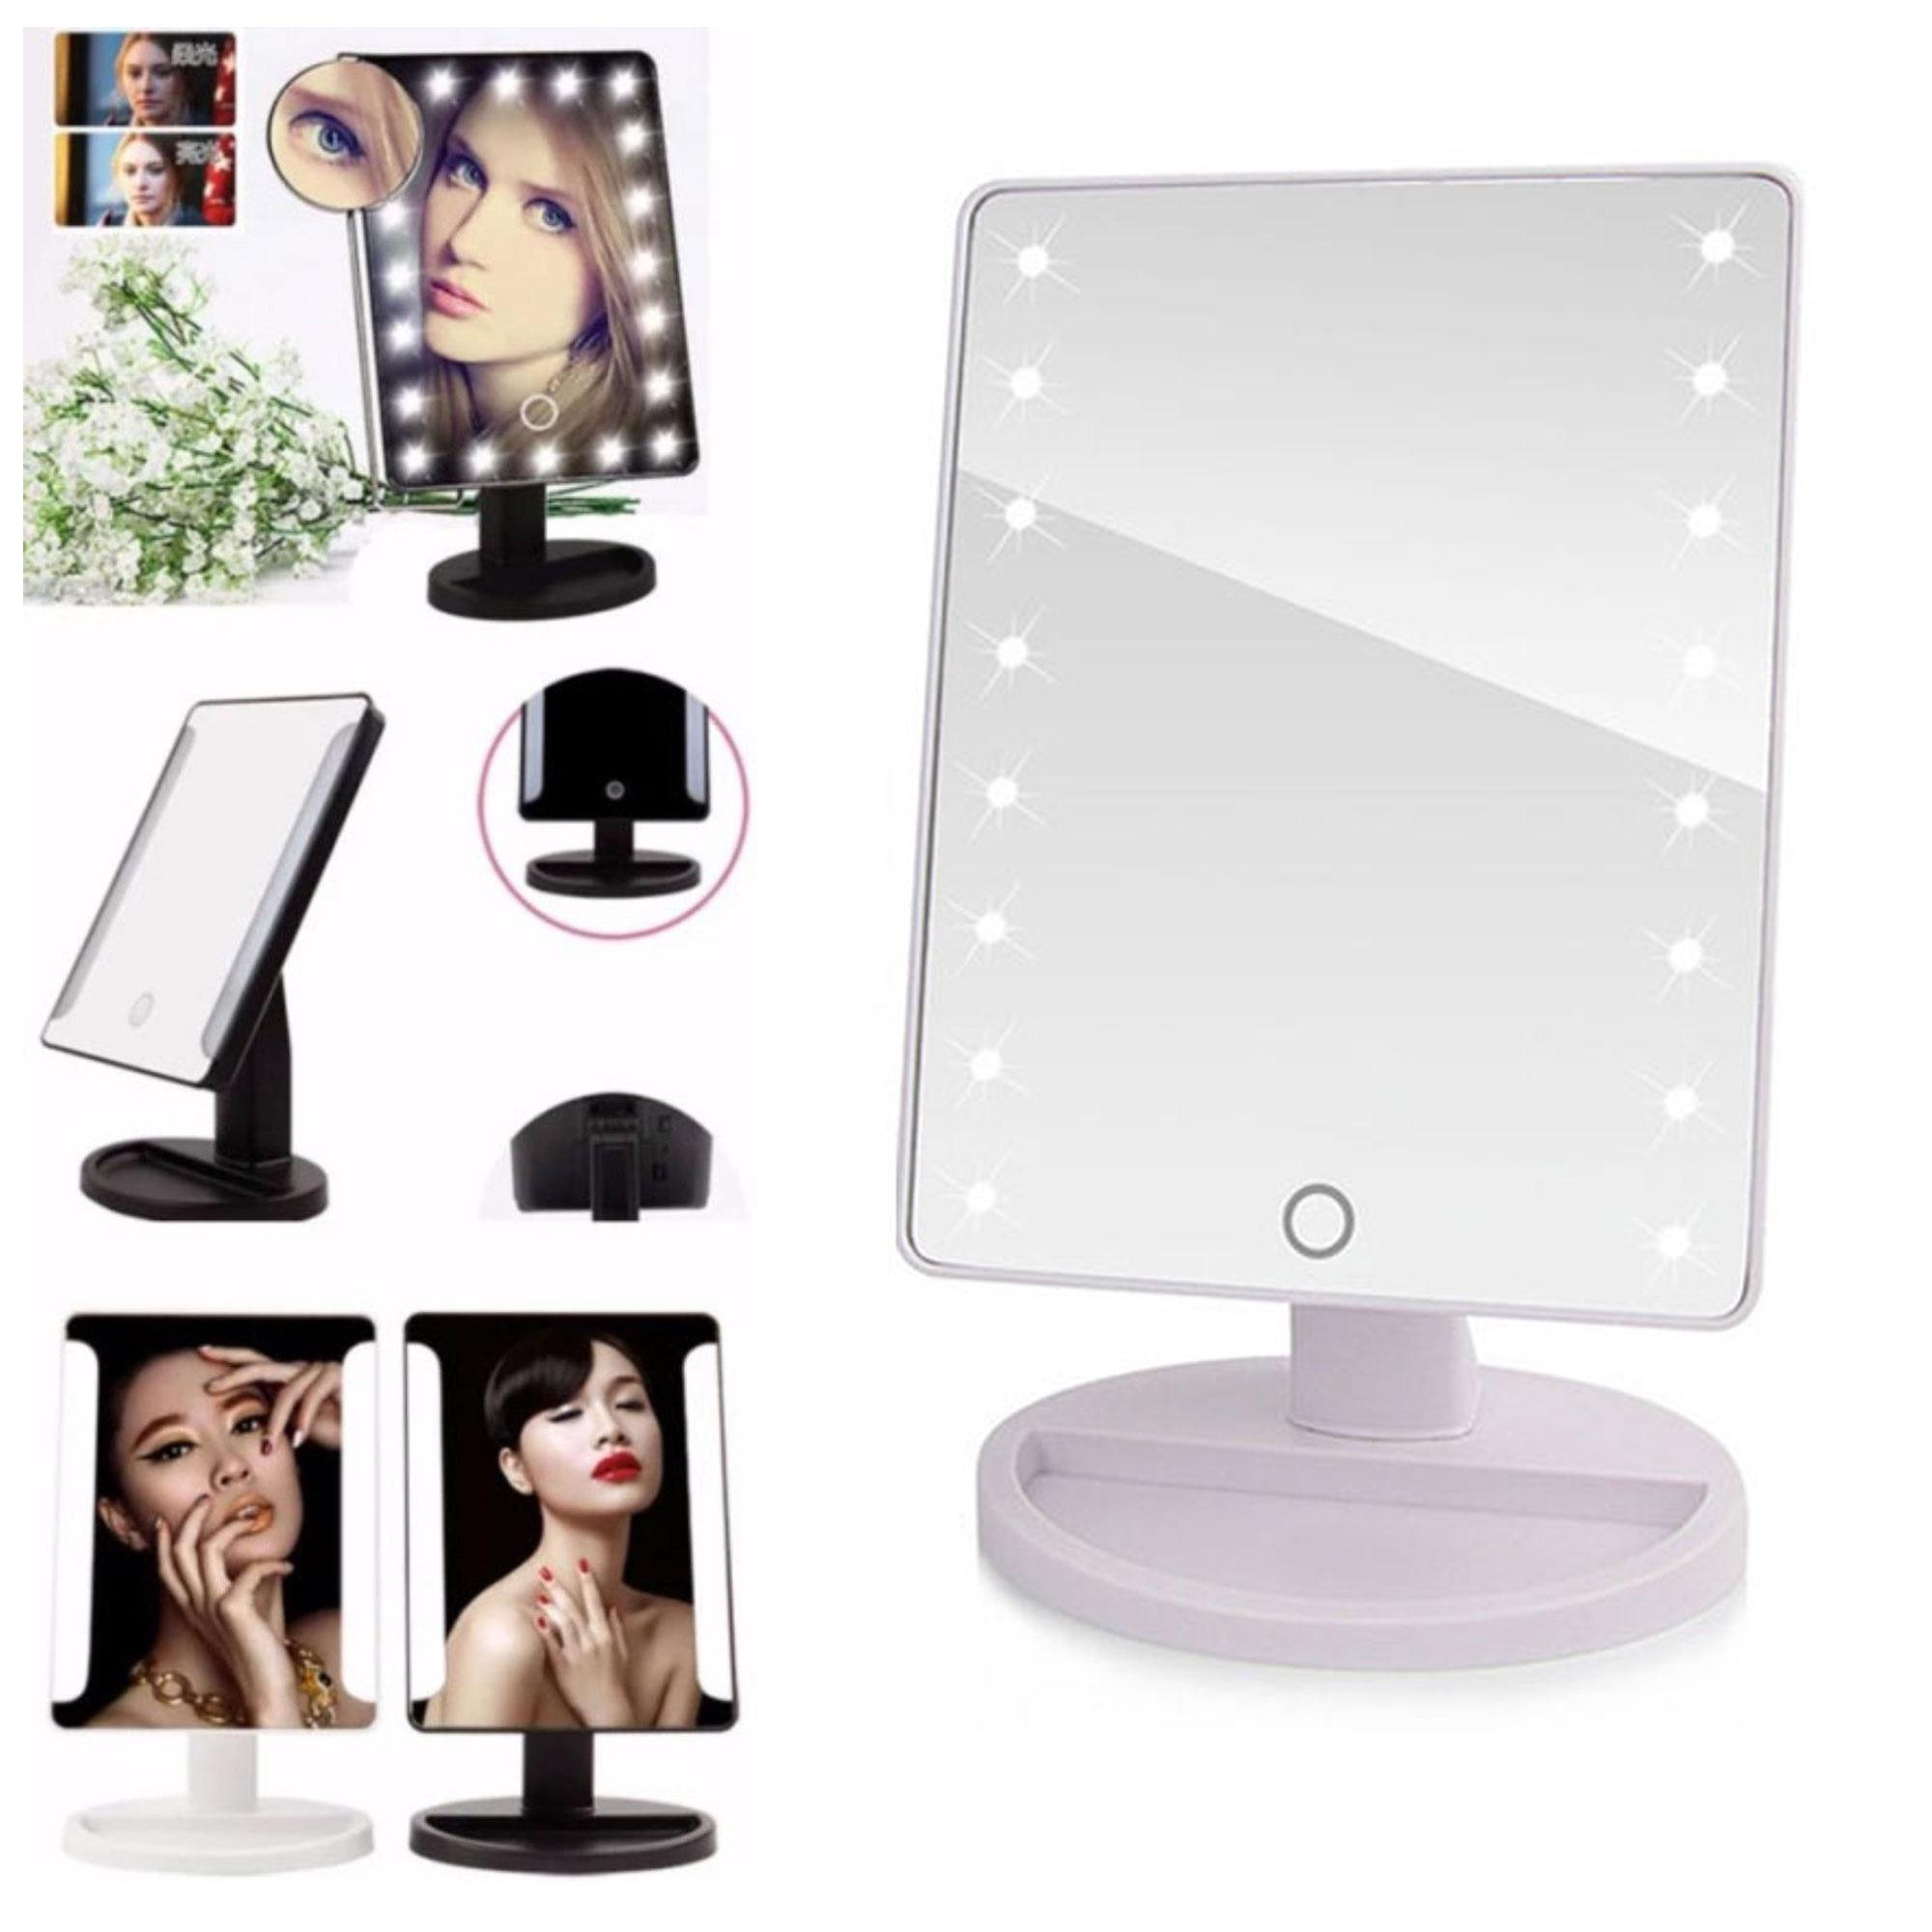 XR-1608 Make Up Vanity Illuminated Desktop Table Makeup Stand Large LED Mirror with 16 LED Light (White) Philippines